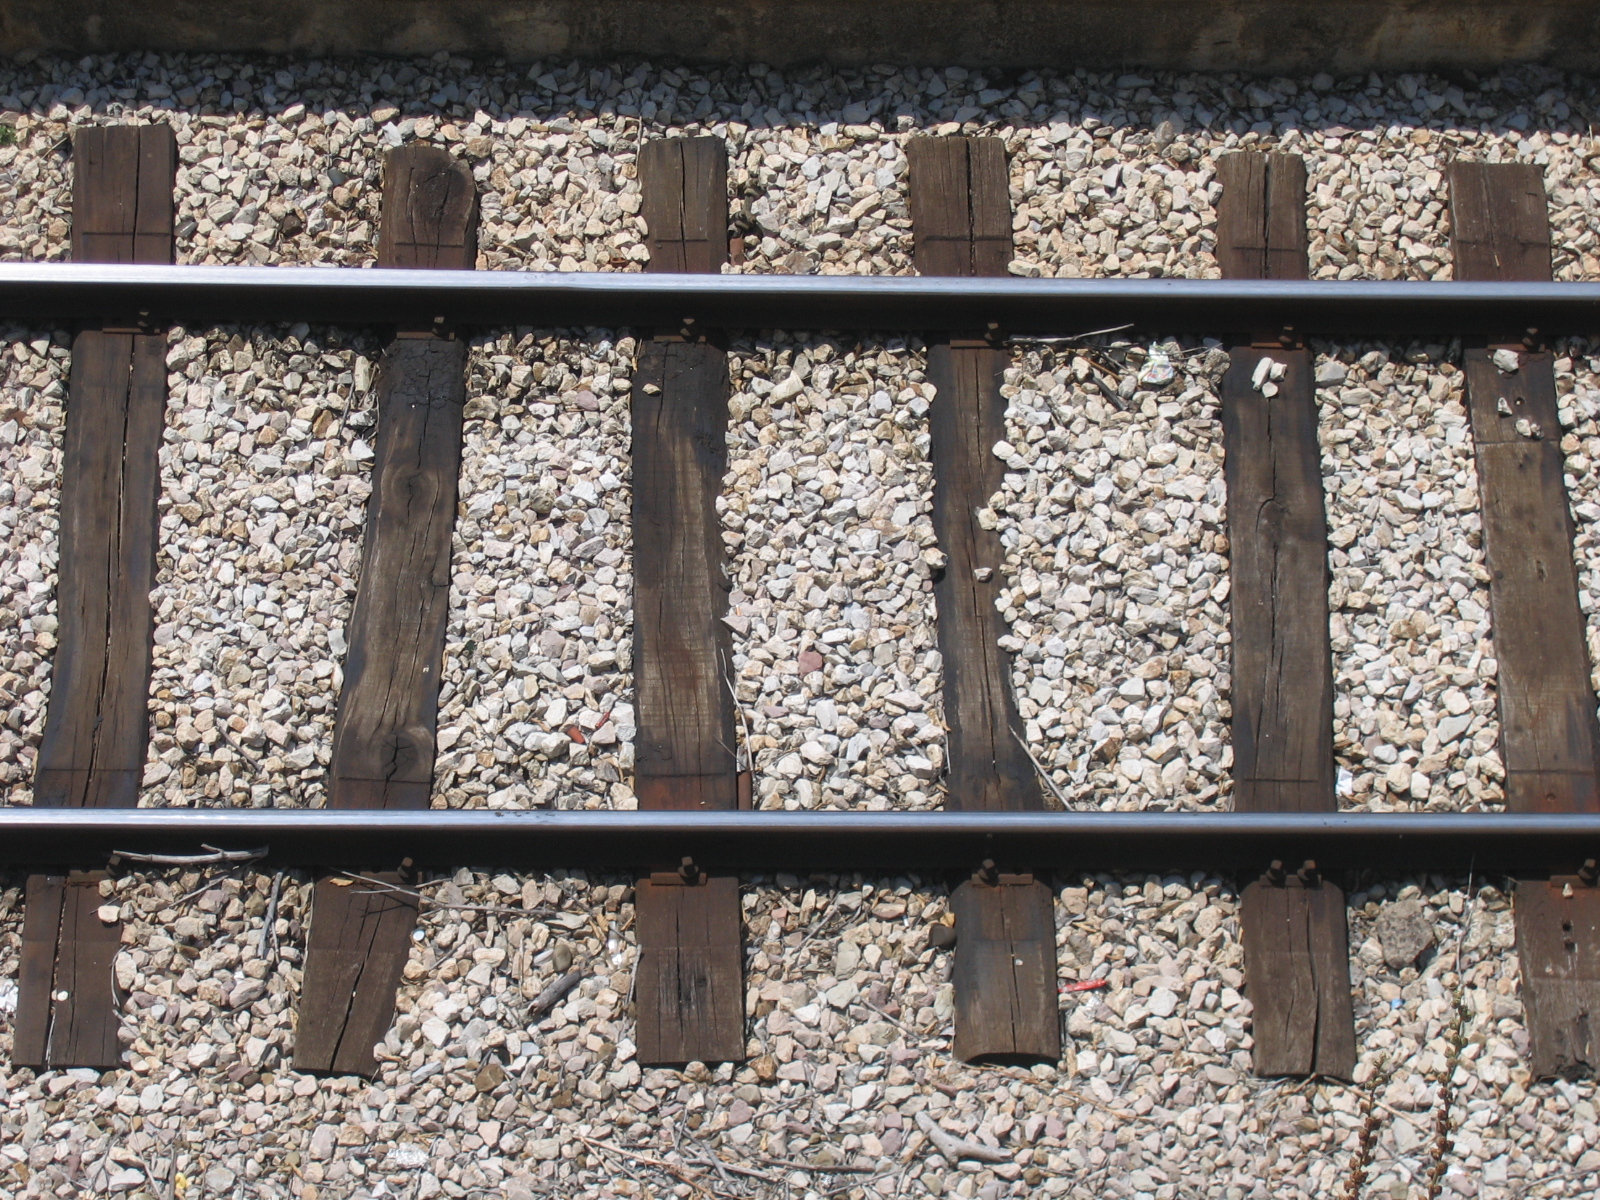 File:Rails from top.jpg - Wikimedia Commons